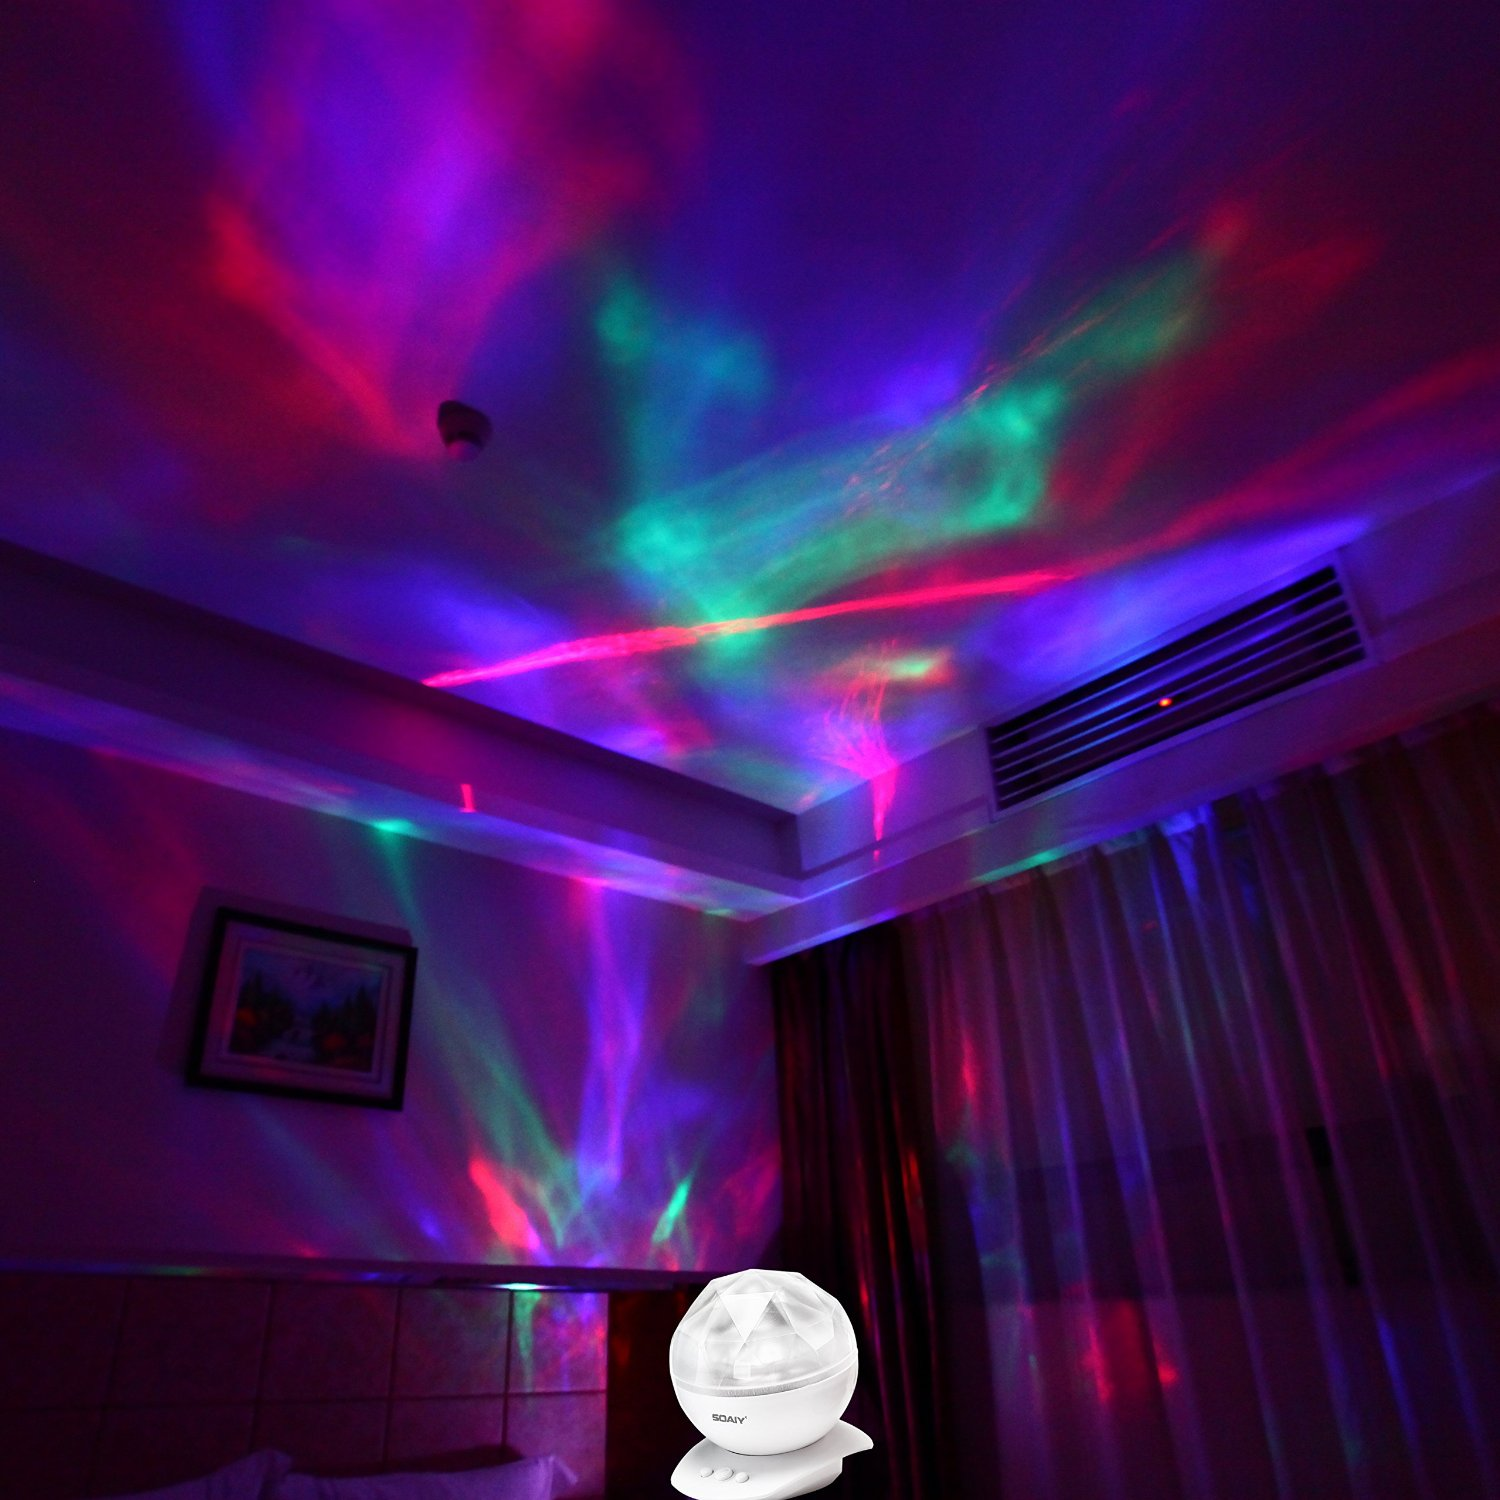 Soaiy Baby Night Light Projector Ocean Wave Lighting Lamp Aurora Lights With Remote Control Timer Music Player 8 Color Options For Kids